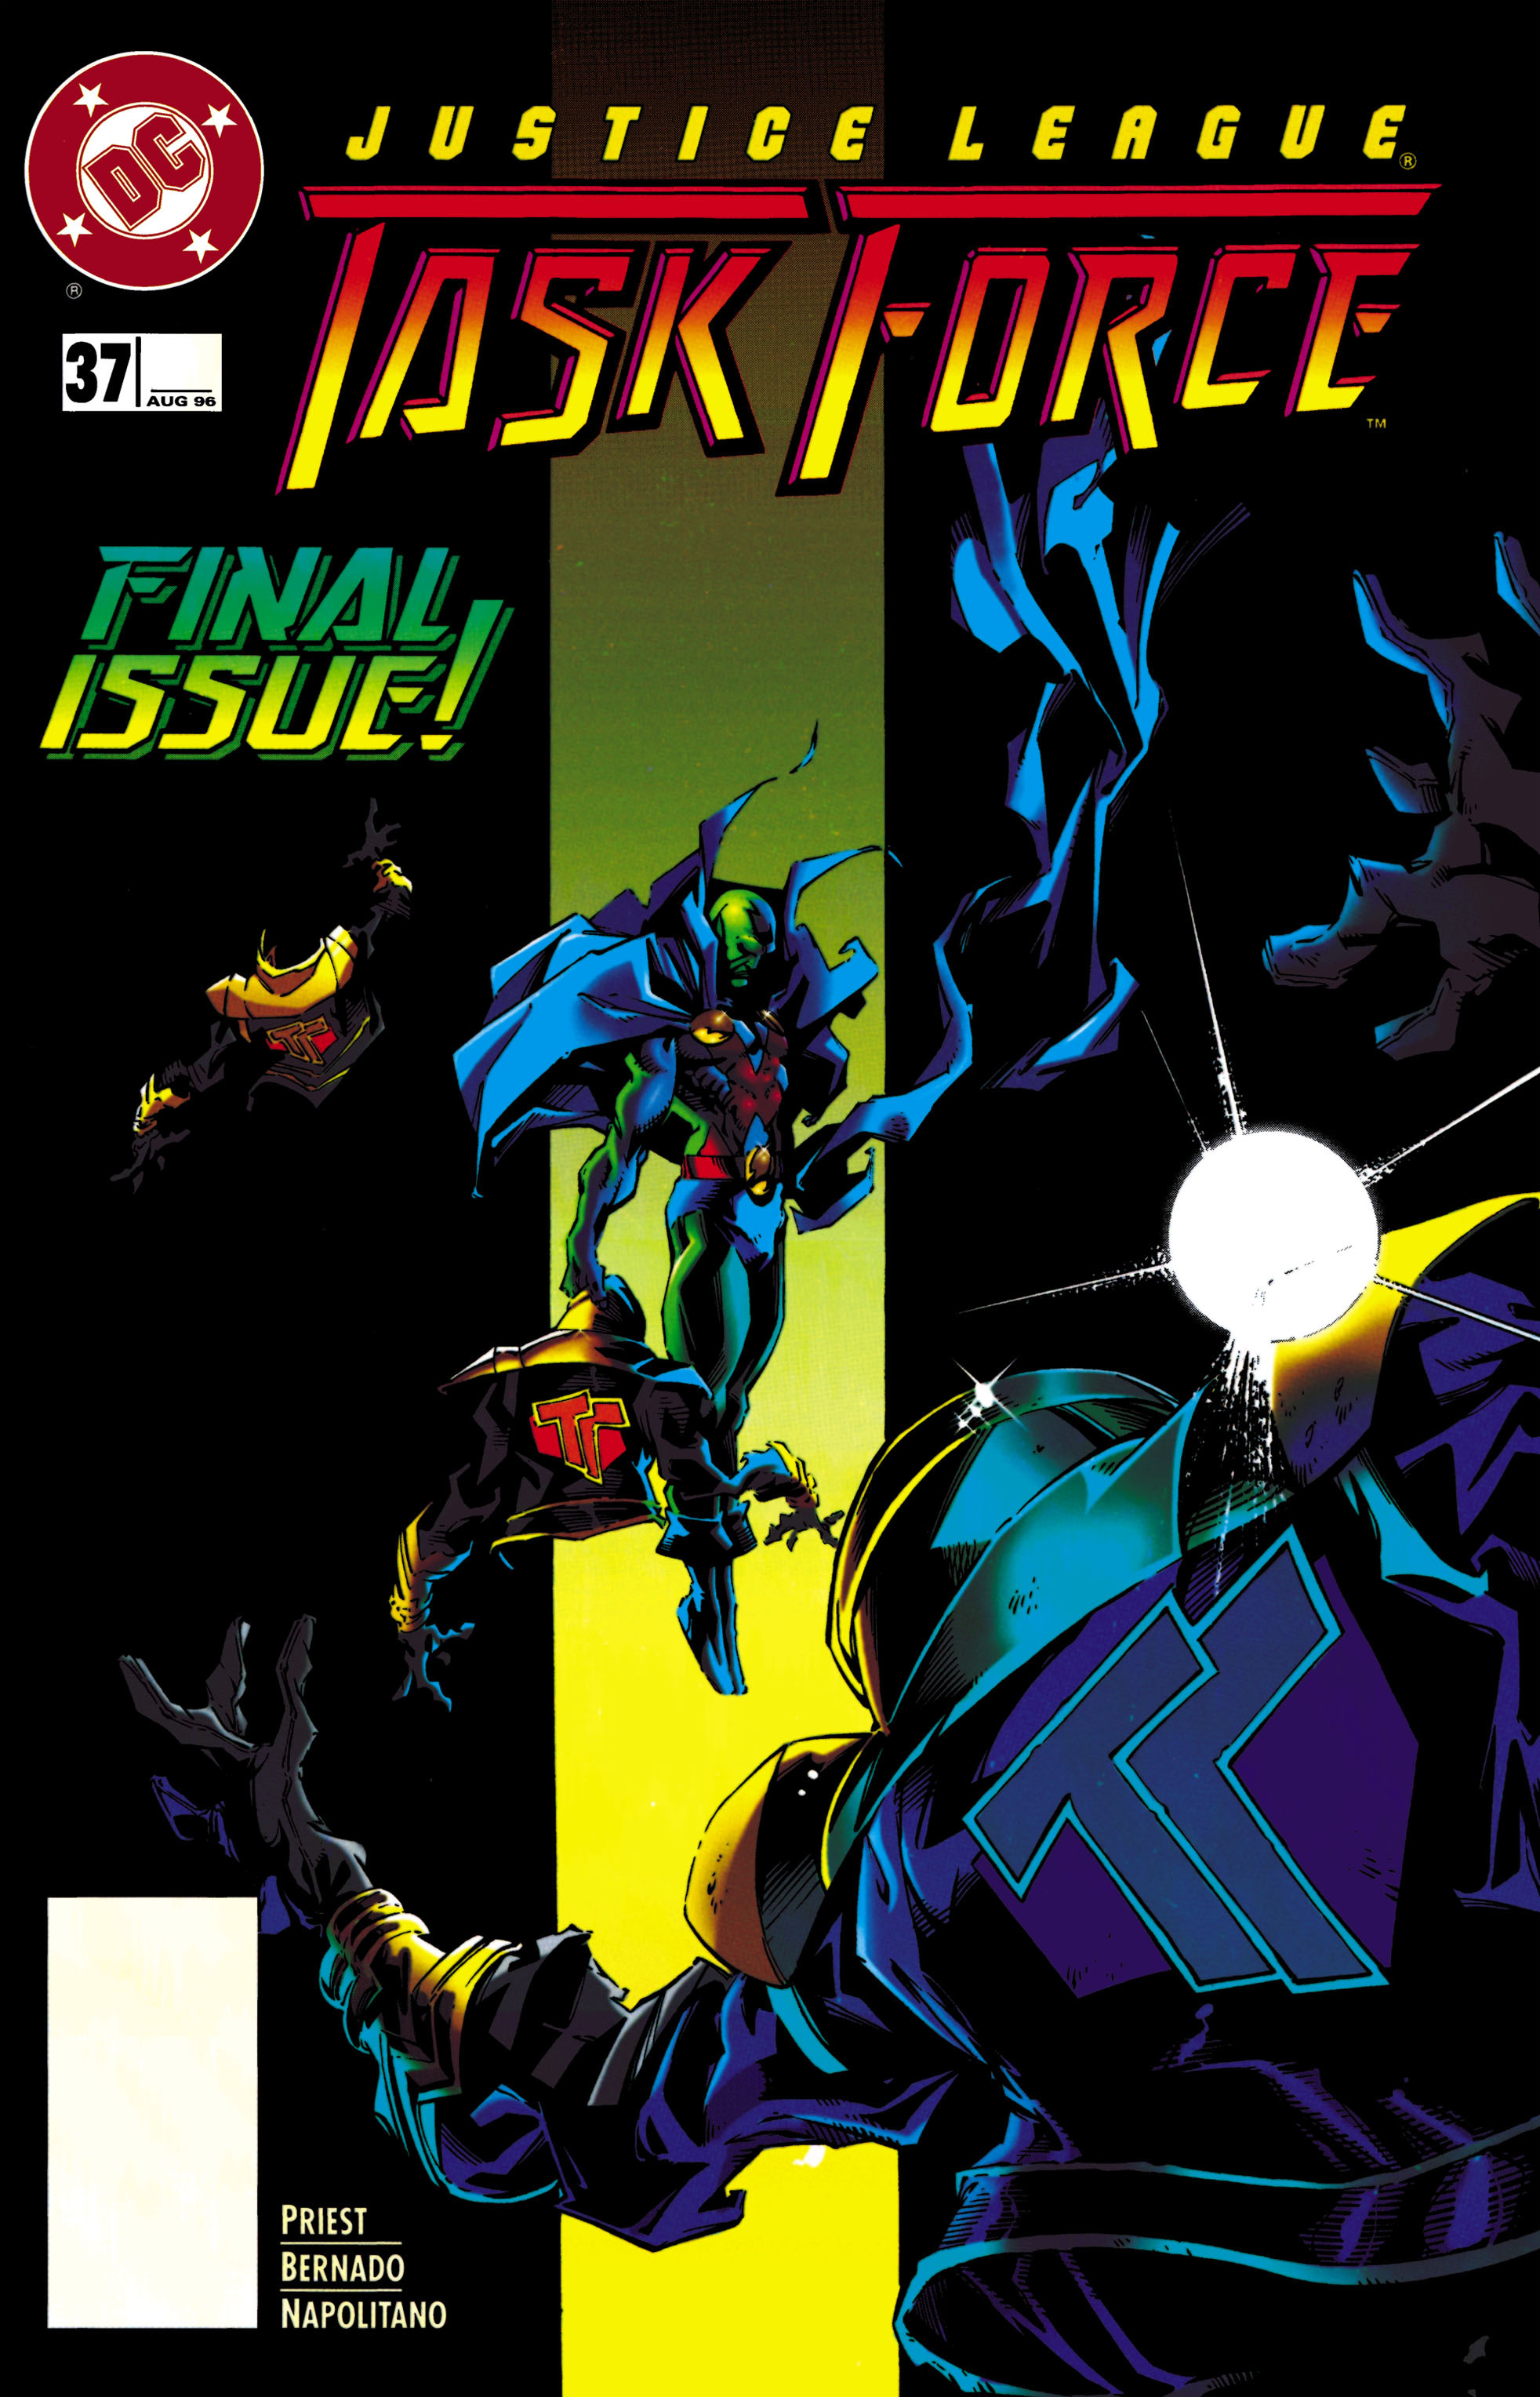 Justice League Task Force 37 Page 1